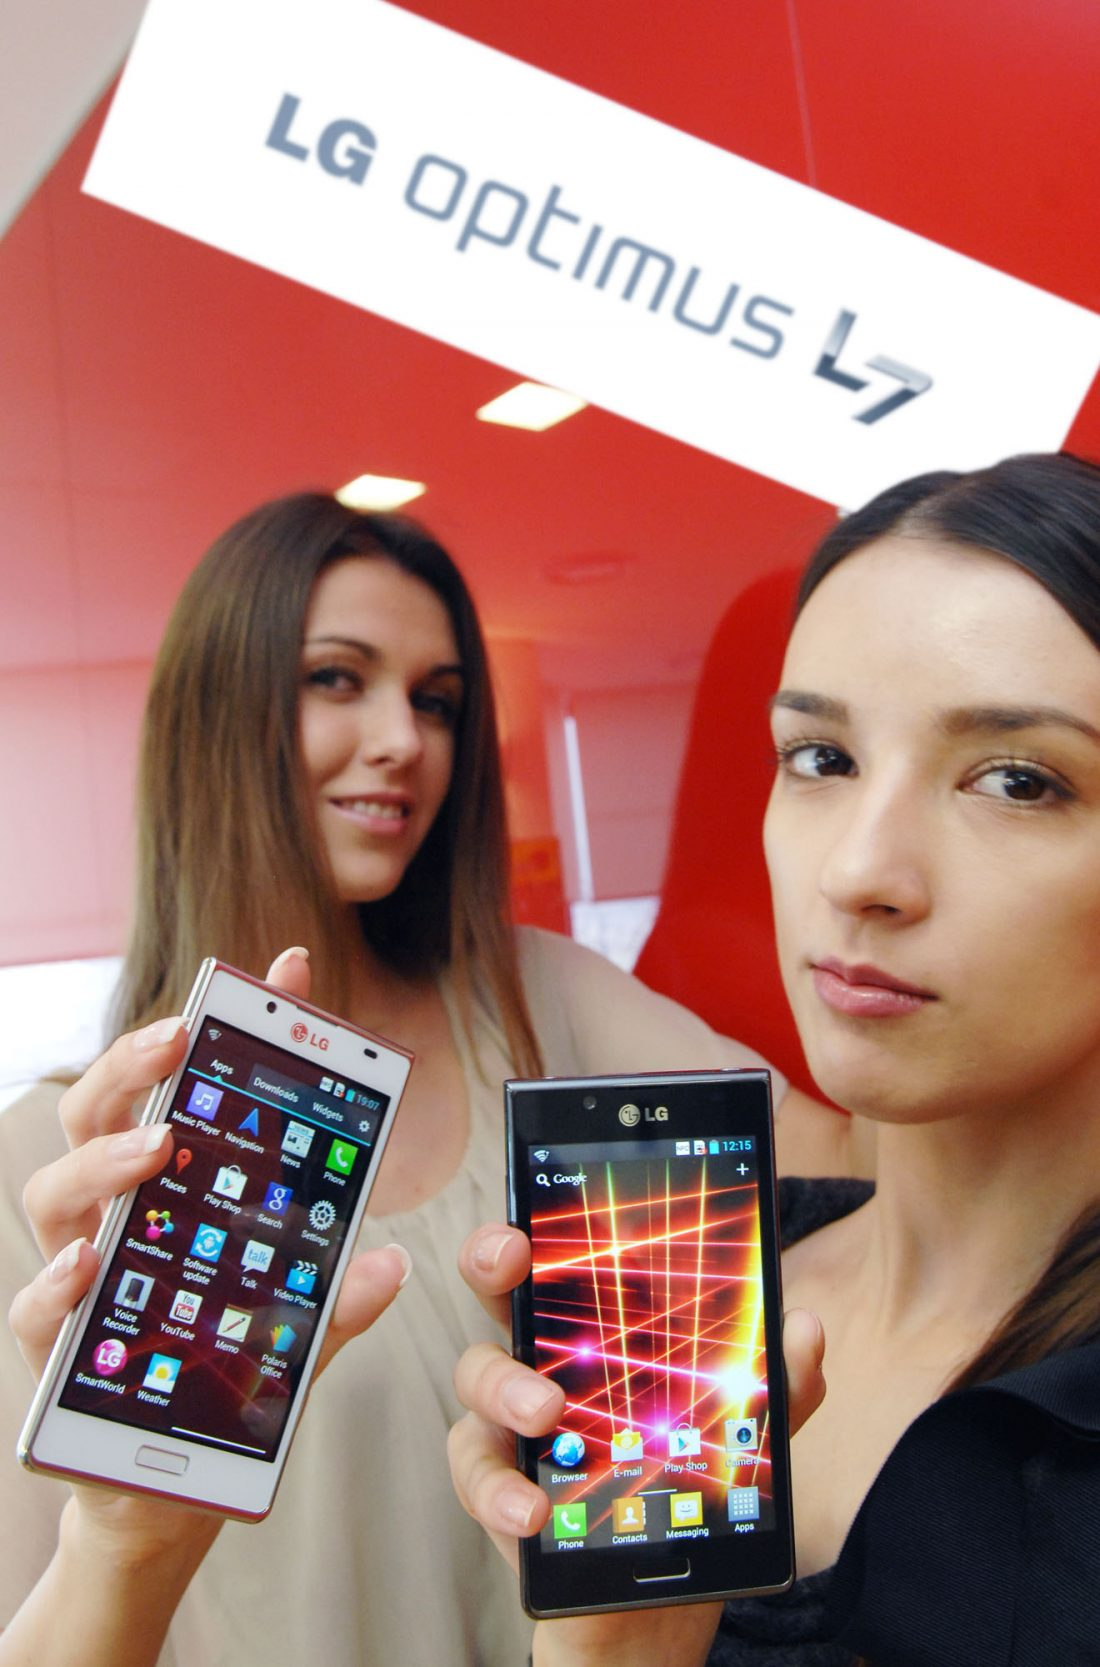 The last image of two female models holding the LG OPTIMUS L7 smartphone and its brand name panel